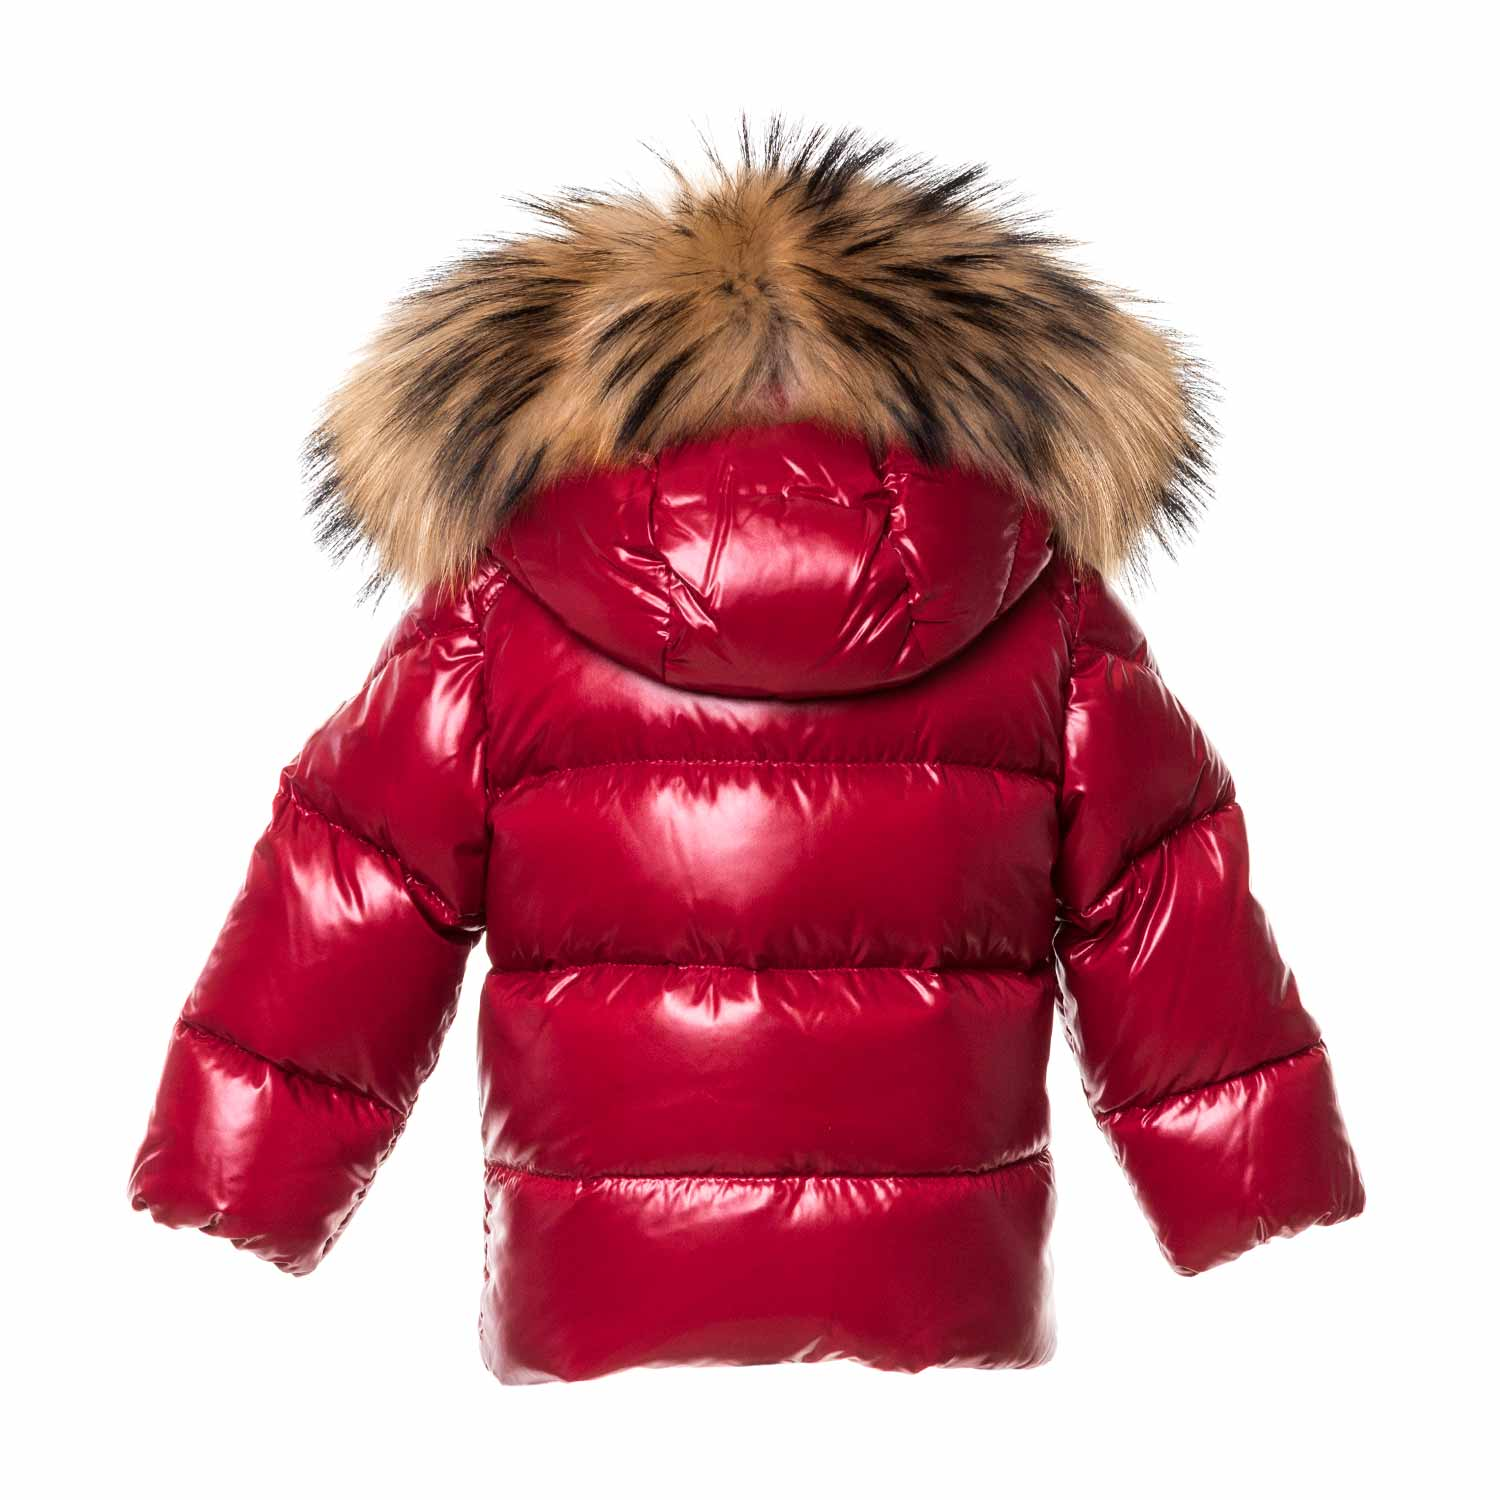 ee3919fab Moncler - Baby Girl Red K2 Down Coat - annameglio.com shop online